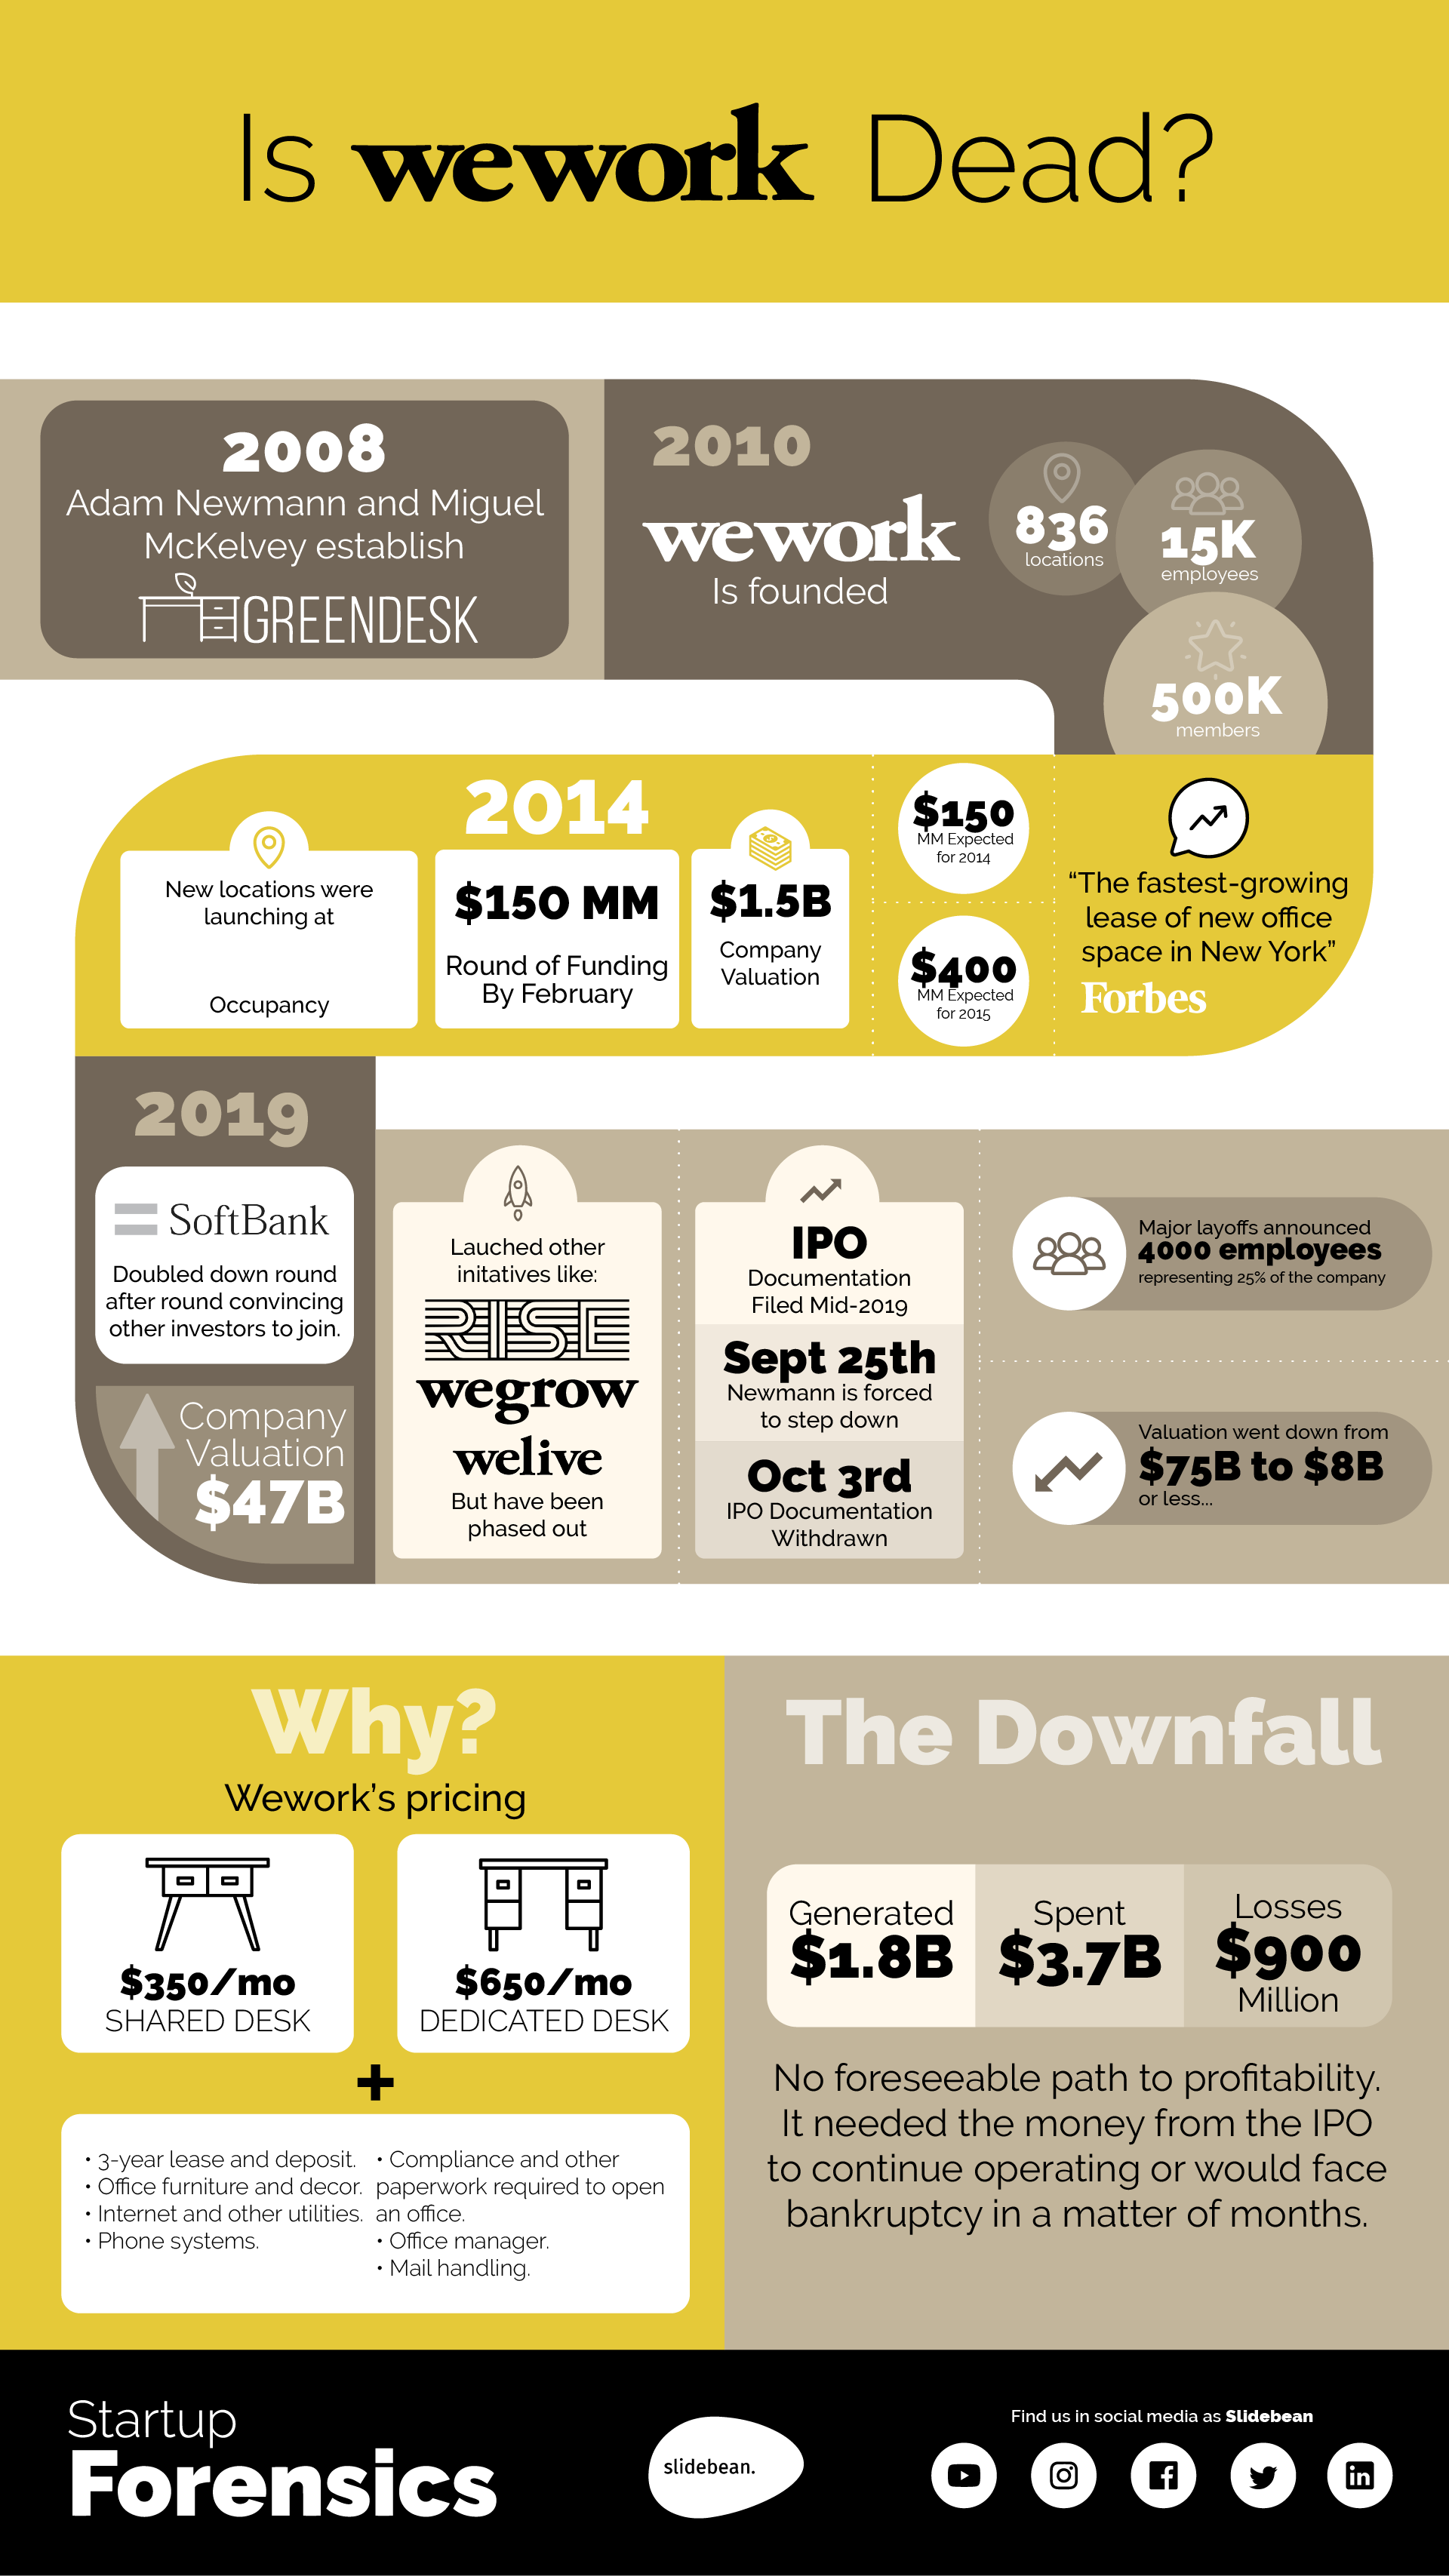 WeWork Downfall Infographic